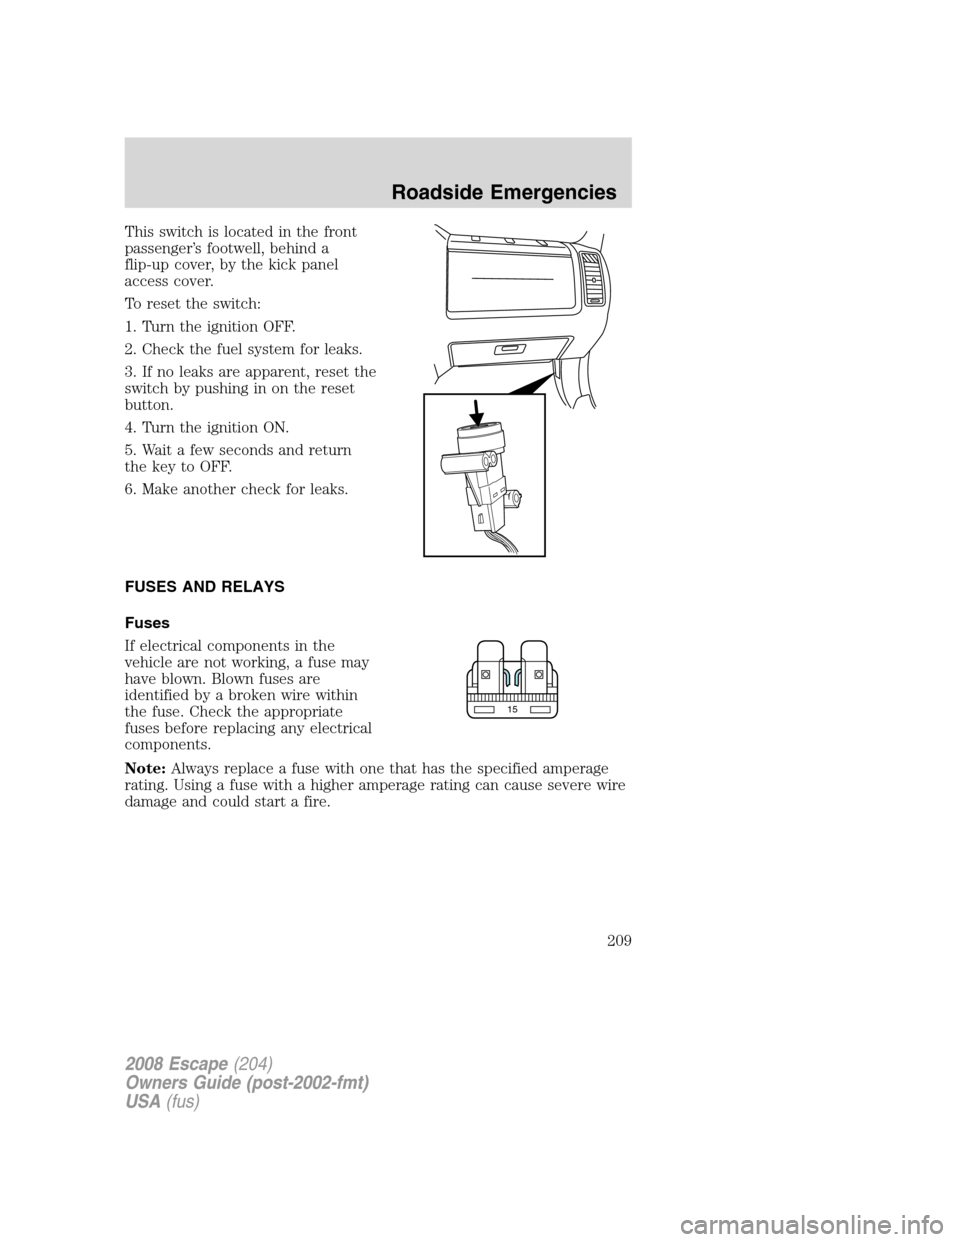 medium resolution of ford escape 2008 2 g owners manual page 209